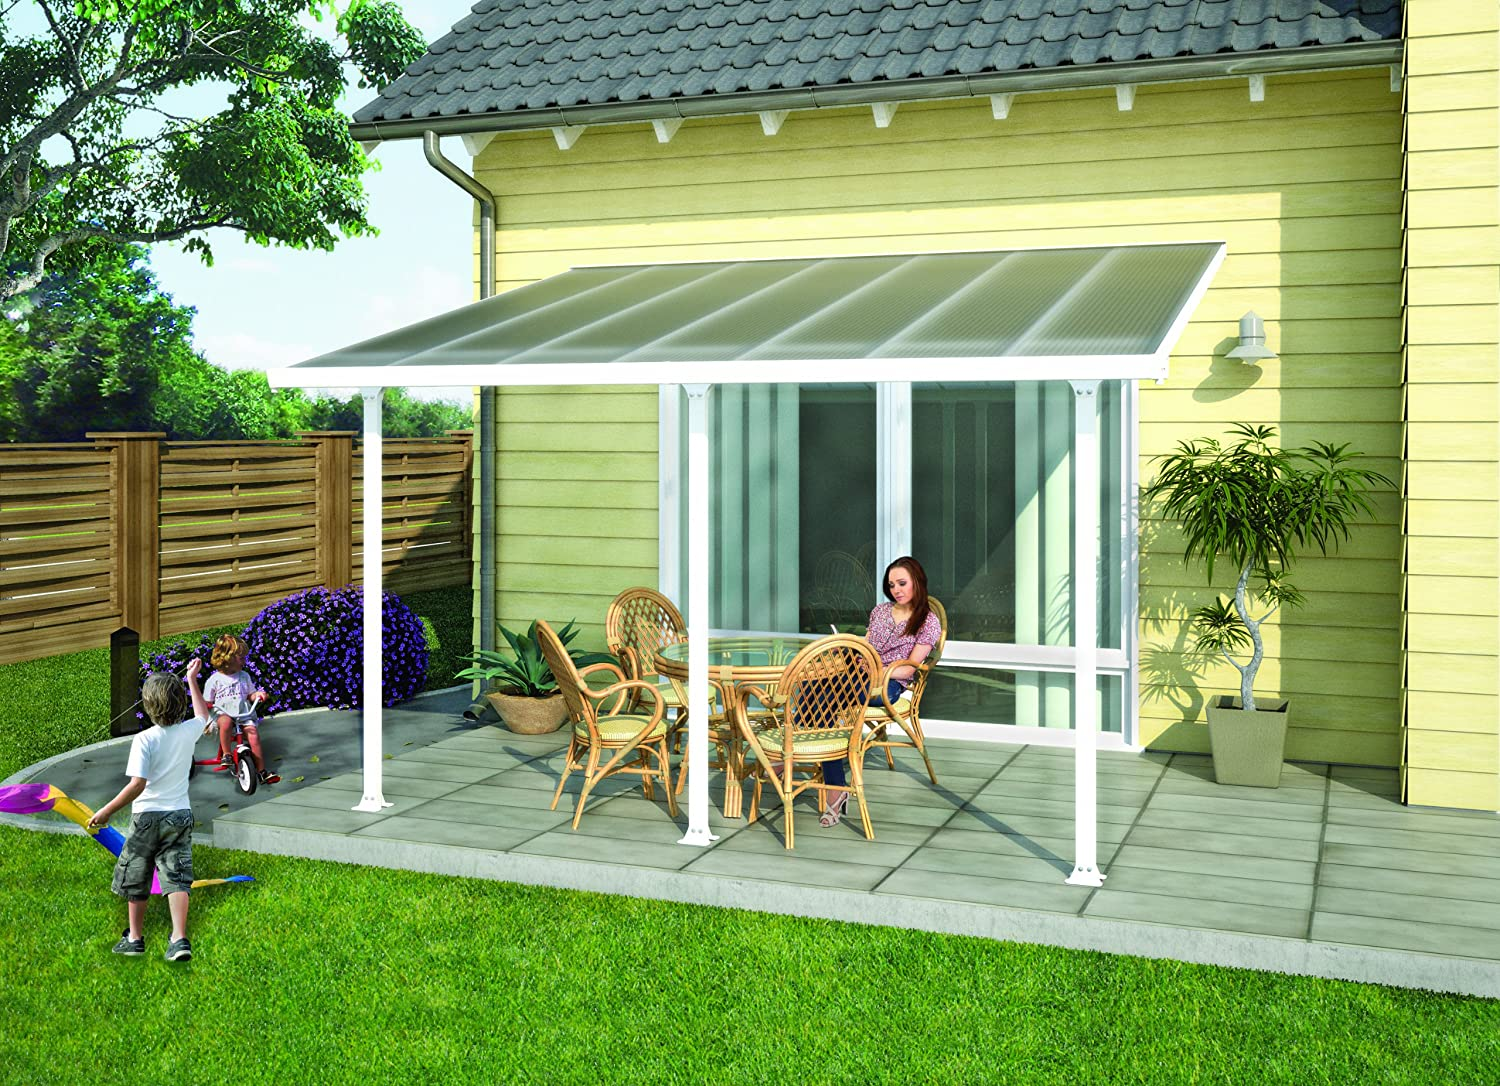 Palram Pergola Patio Cover Feria 3 X 4.25m With Robust Structure For  Year Round Use   White: Amazon.co.uk: Garden U0026 Outdoors